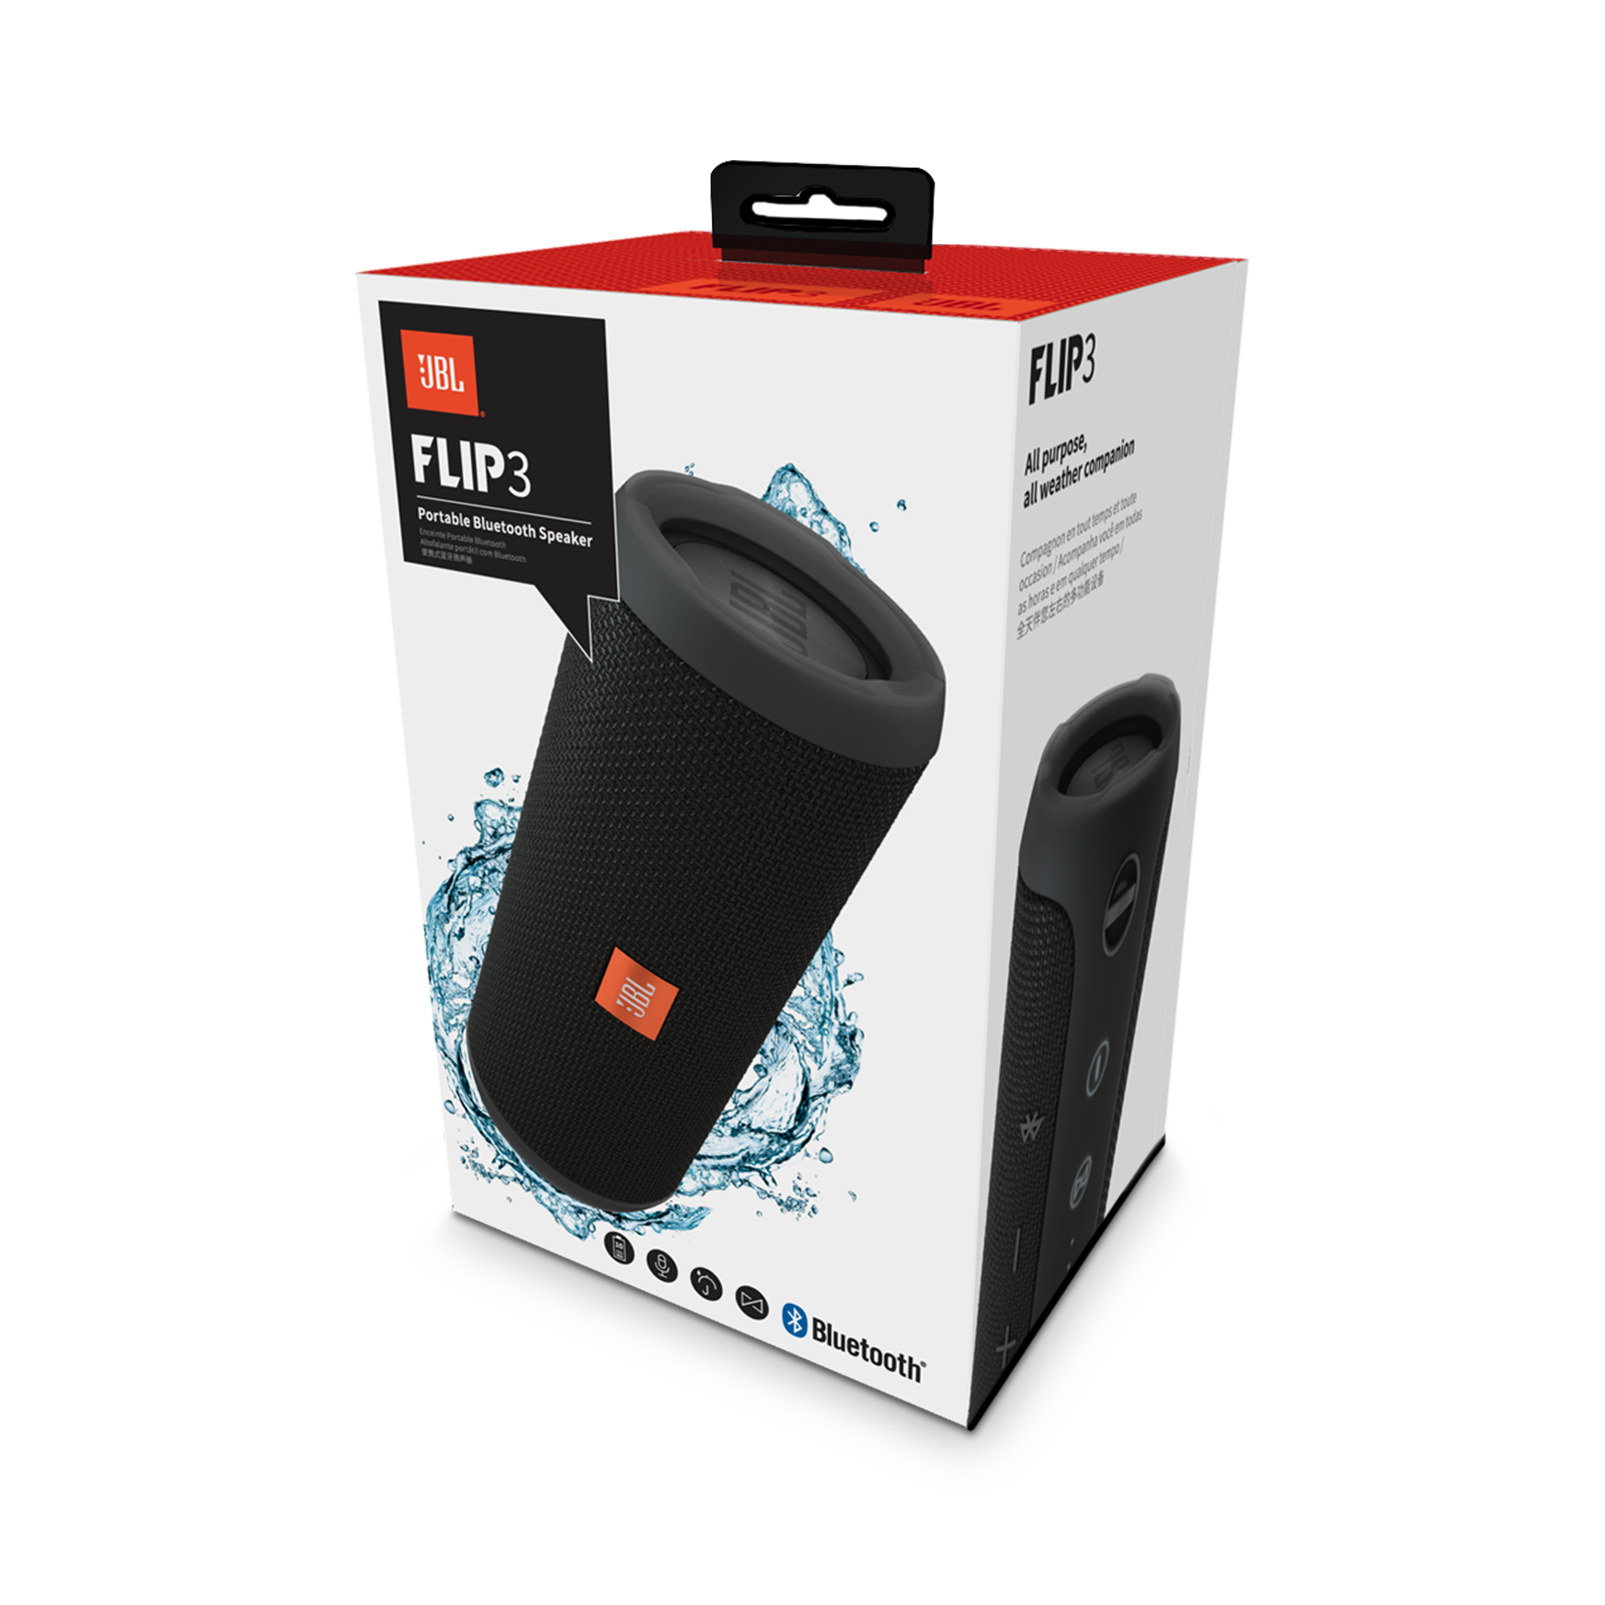 Jbl Flip 3 Full Featured Splashproof Portable Speaker With 5 Mm Jack Ptt Microphone Wiring Manuals Downloads